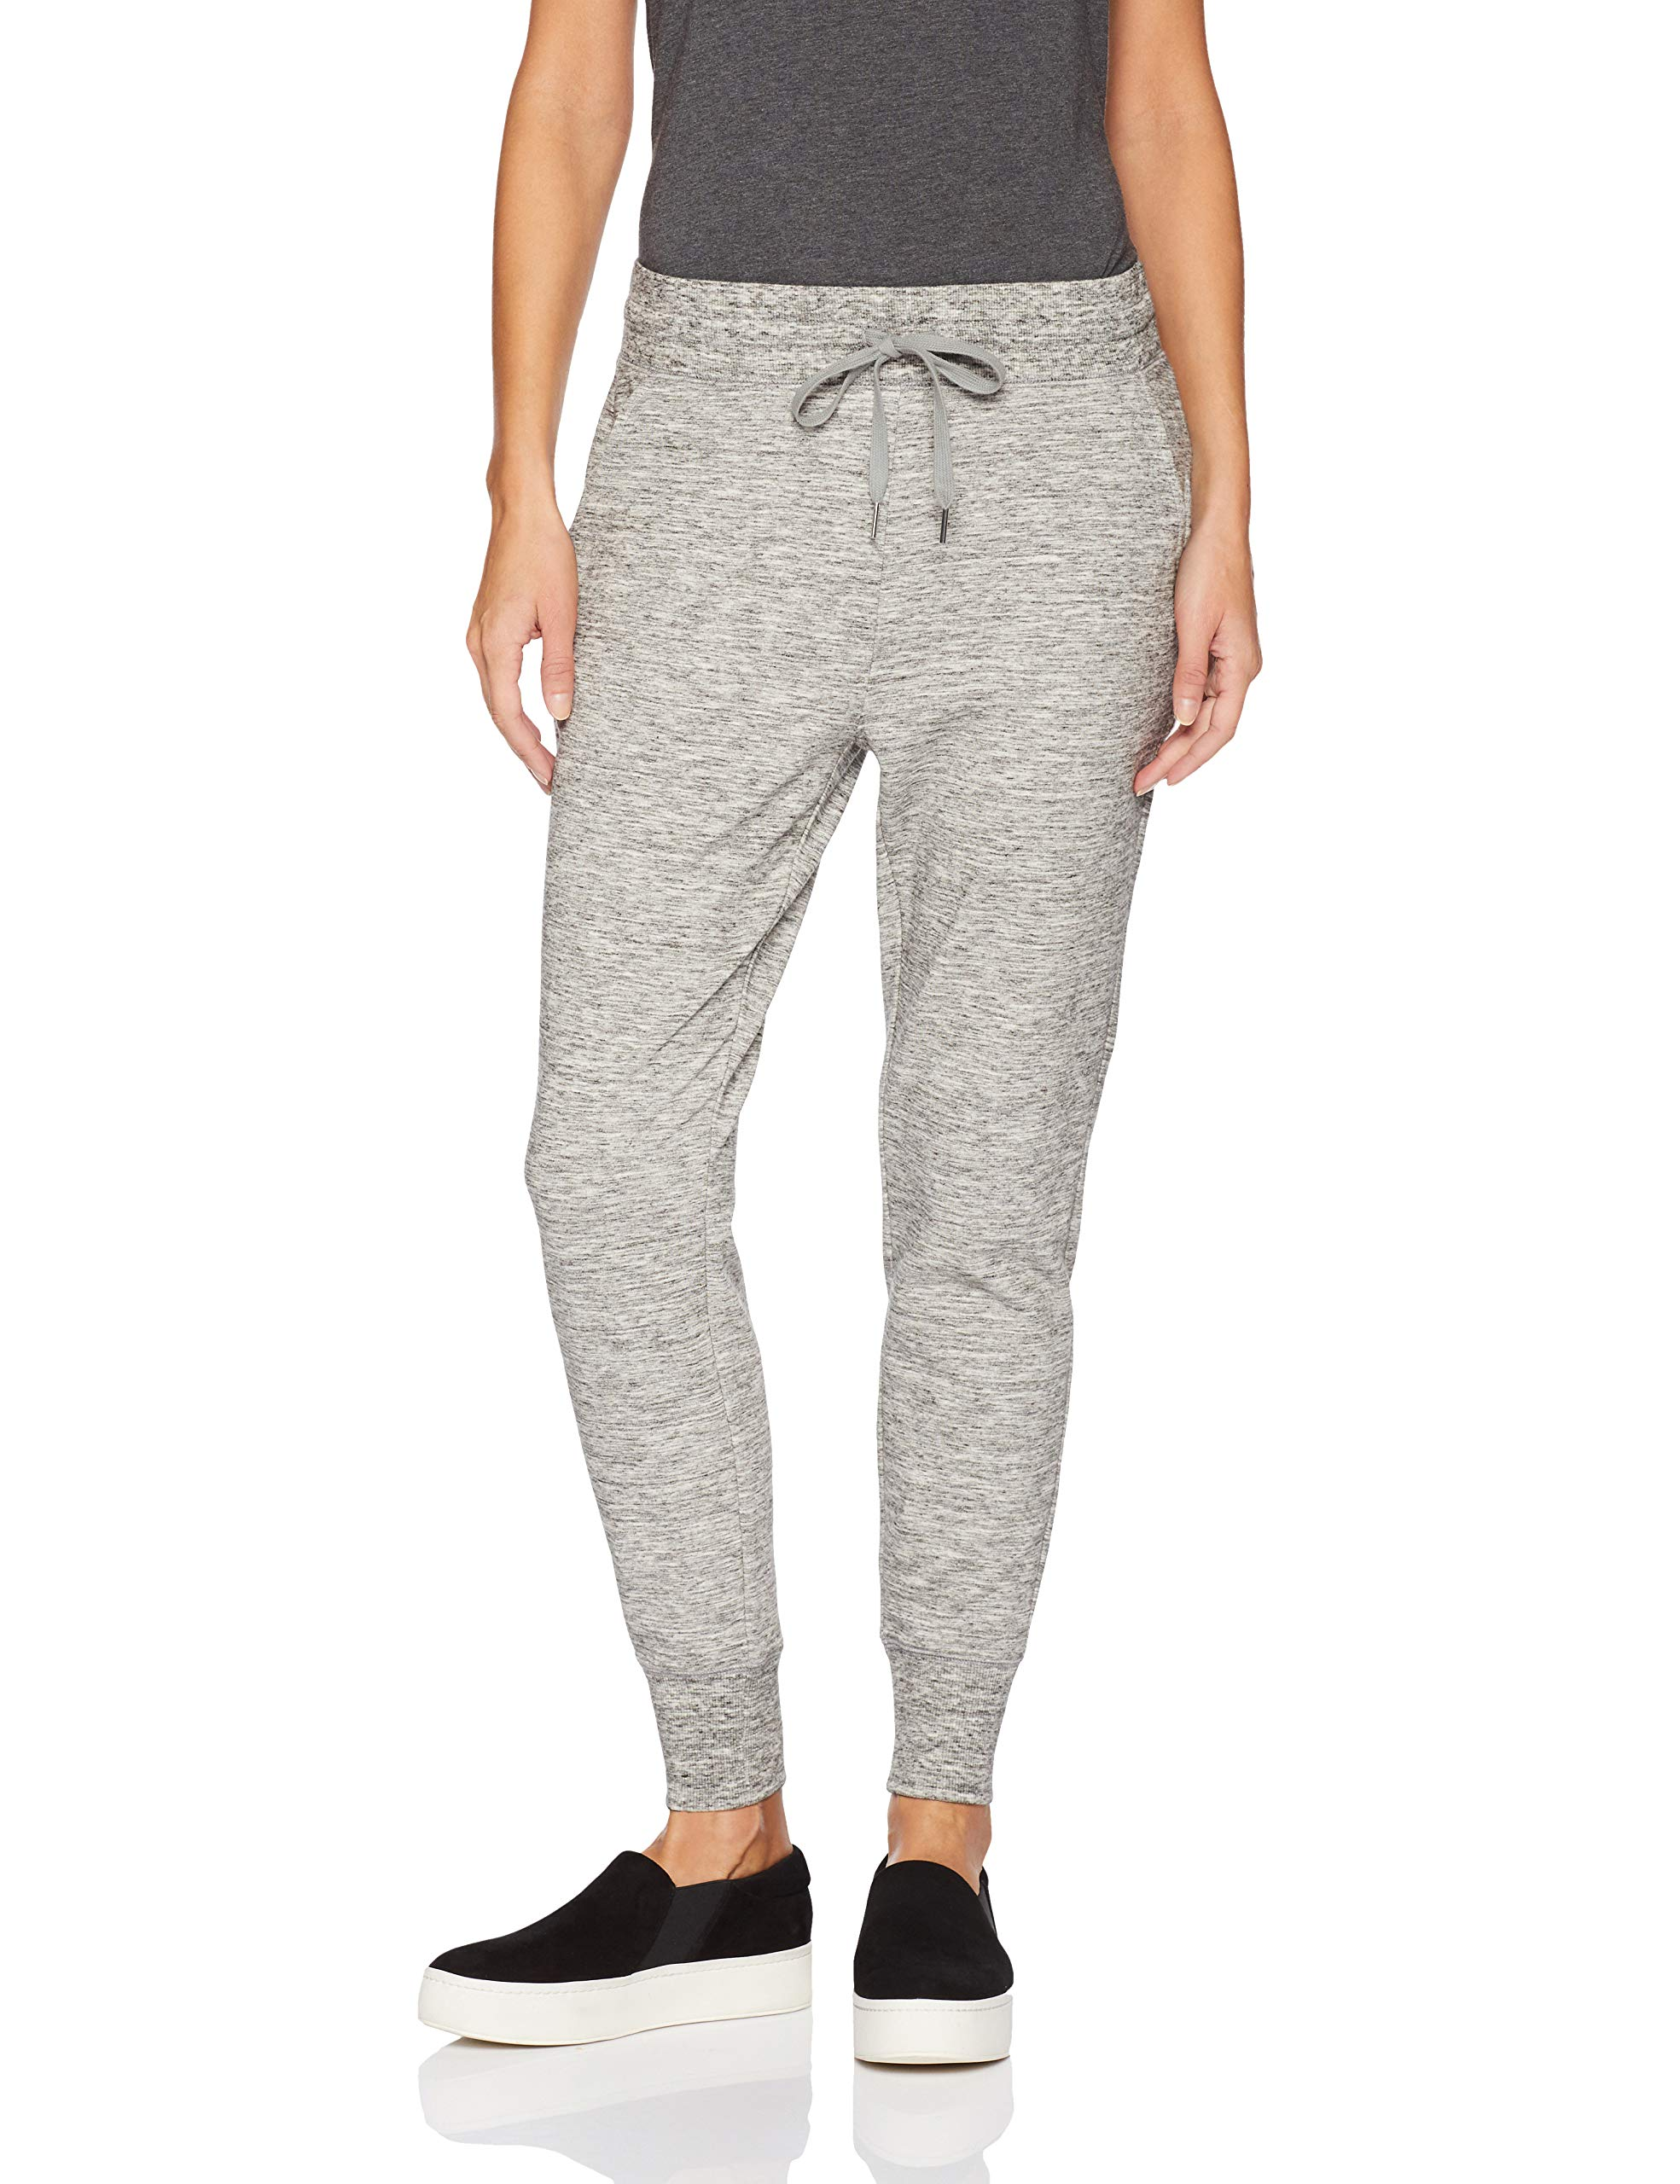 Amazon Brand - Daily Ritual Women's Terry Cotton and Modal Jogger